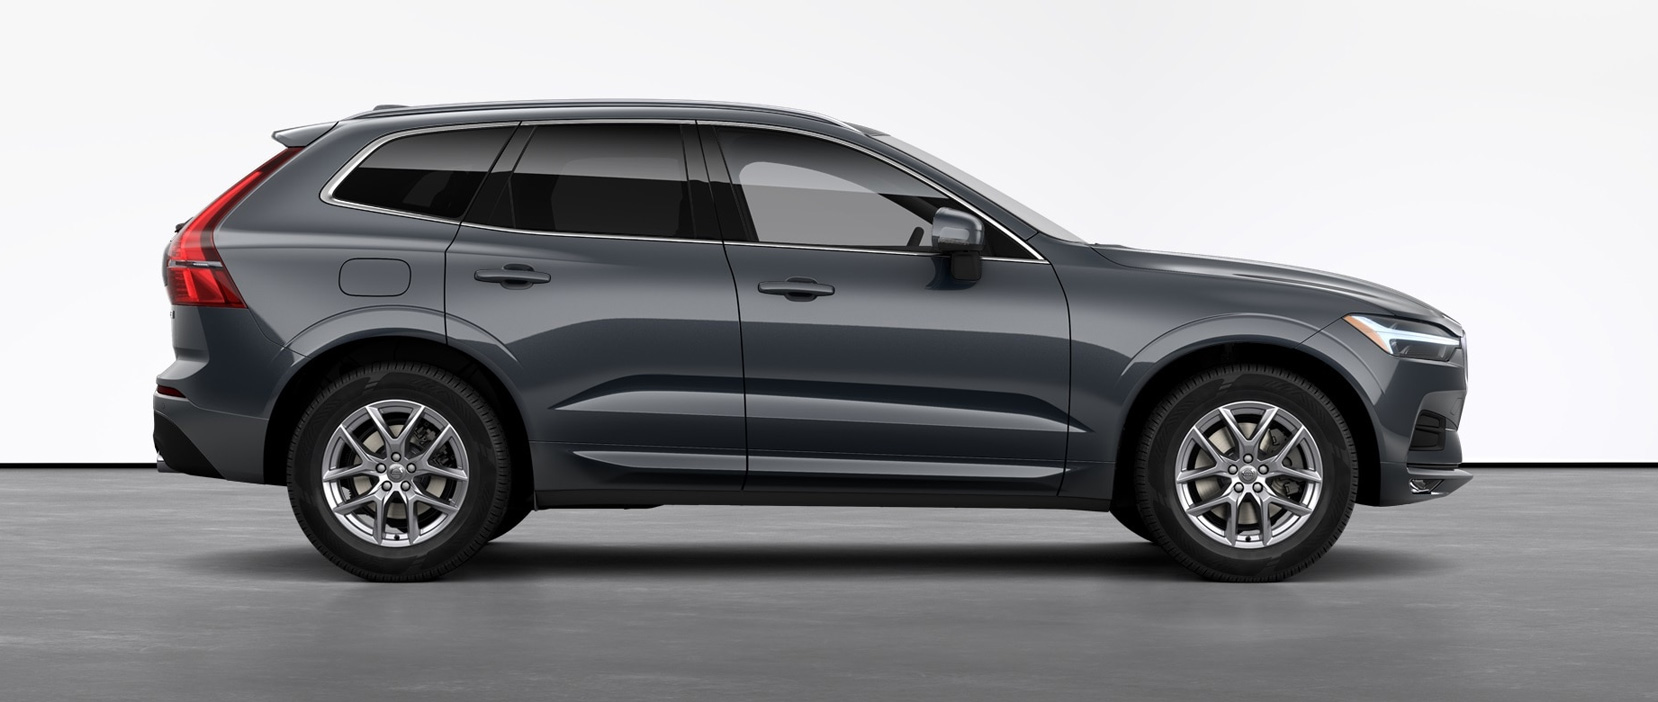 2021 Volvo XC60 T5 Momentum shown